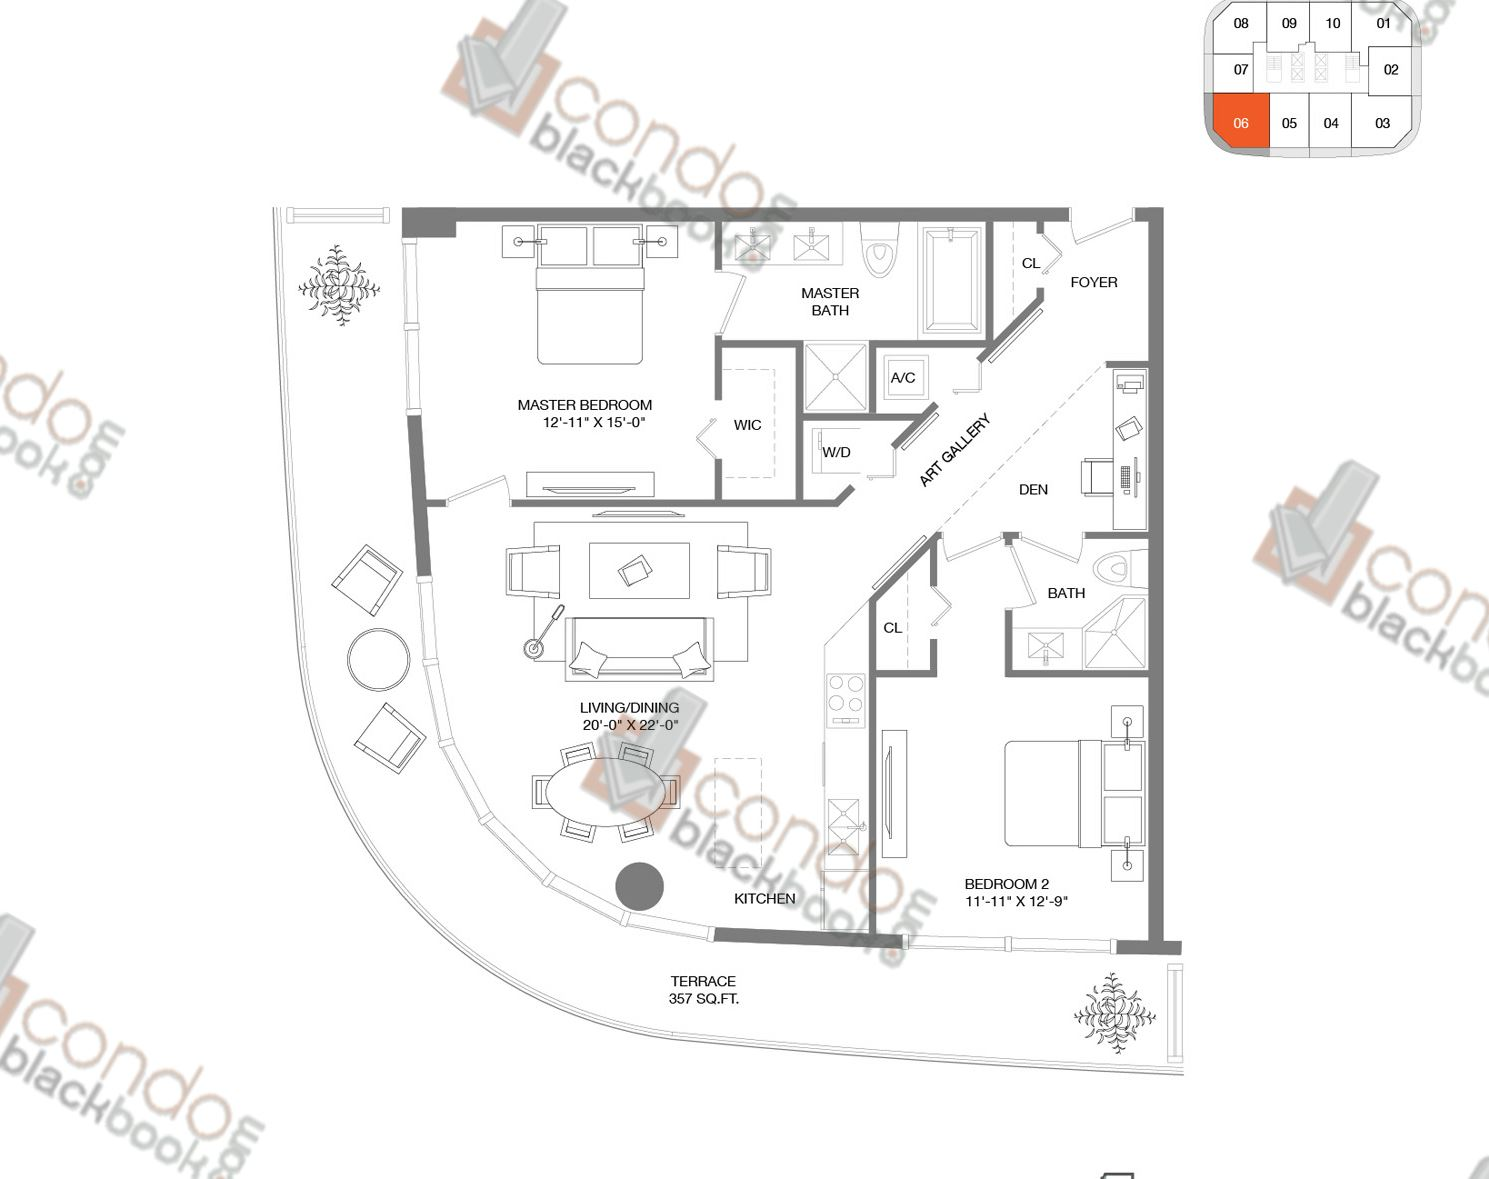 Floor plan for Brickell Heights East Tower Brickell Miami, model Residence 06, line 06, 2/+DEN bedrooms, 1,178 sq ft